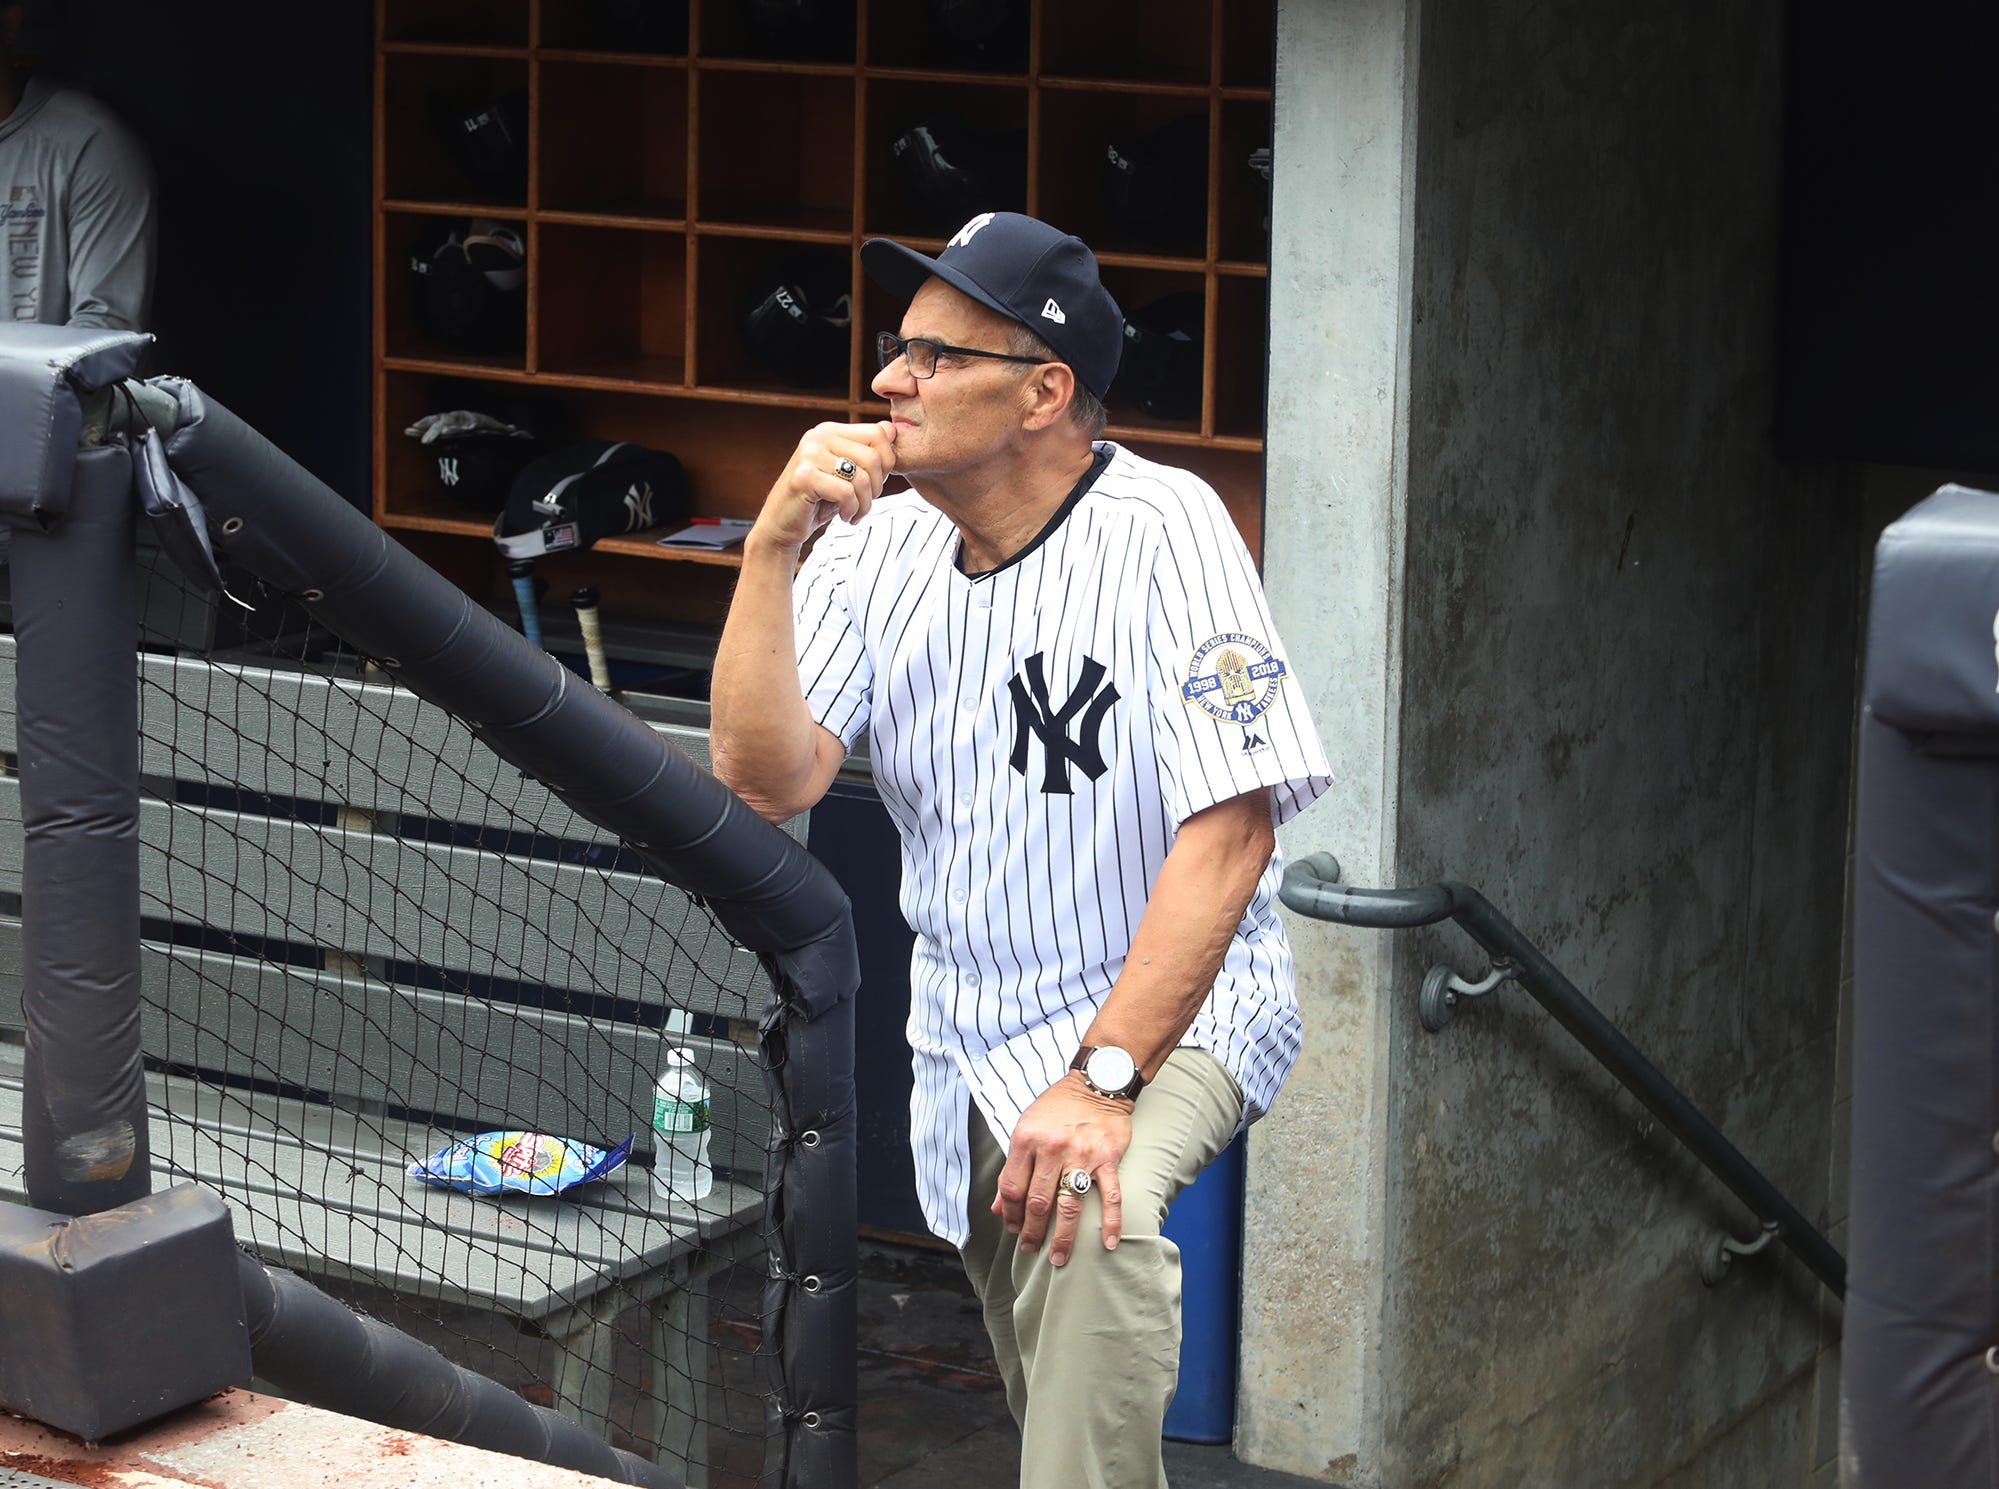 Former manager Joe Torre on the steps of the Yankee dug out where he was when the Yankees won the World Series in 1998. The 98 Yankees came back to celebrate the twentieth anniversary of their World Series win.Pedota POY 2018